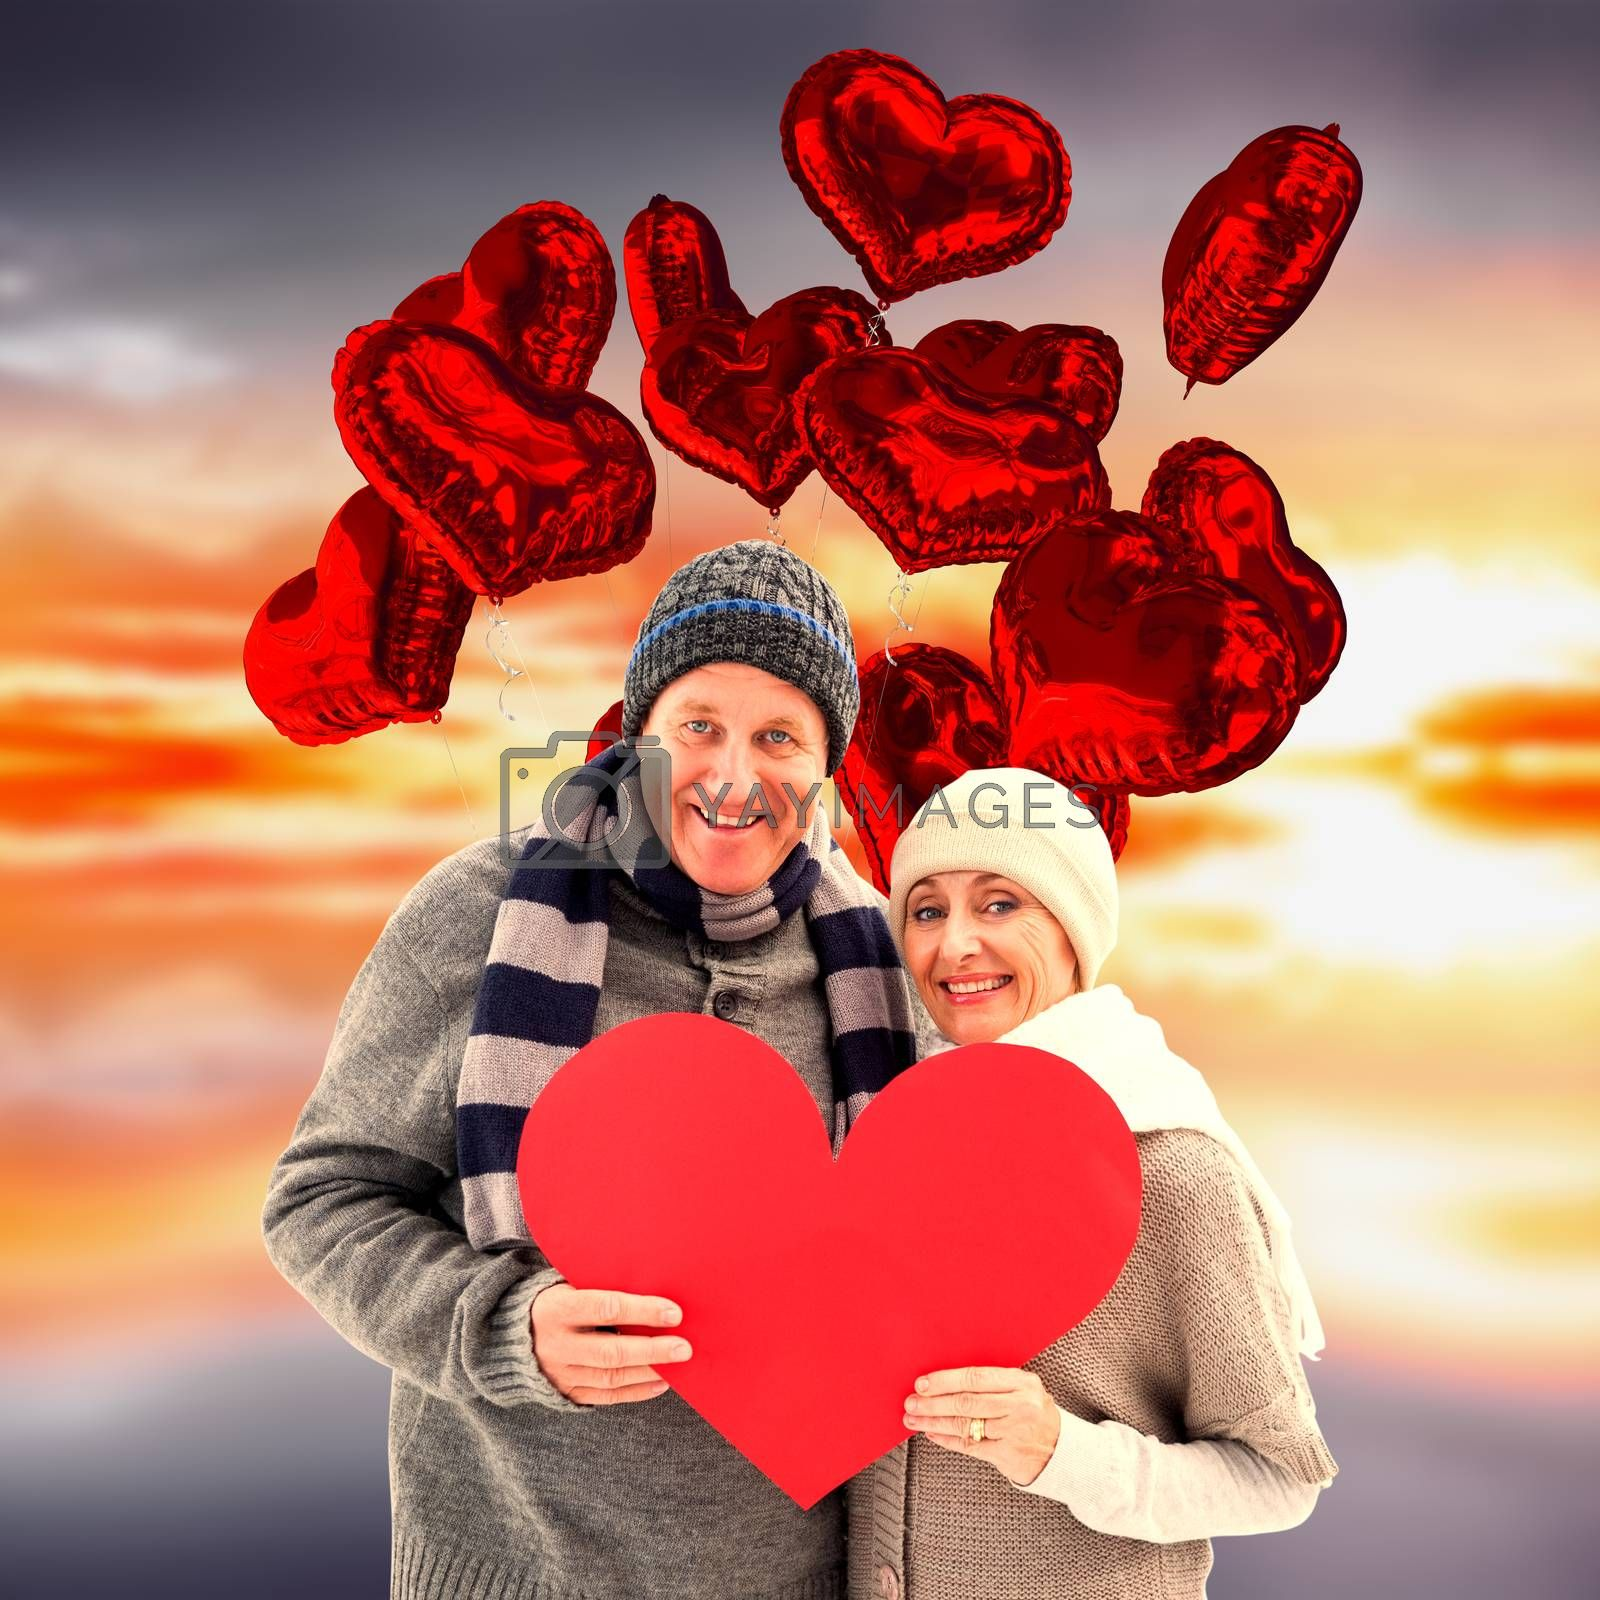 Happy mature couple in winter clothes holding red heart against purple sky with orange clouds